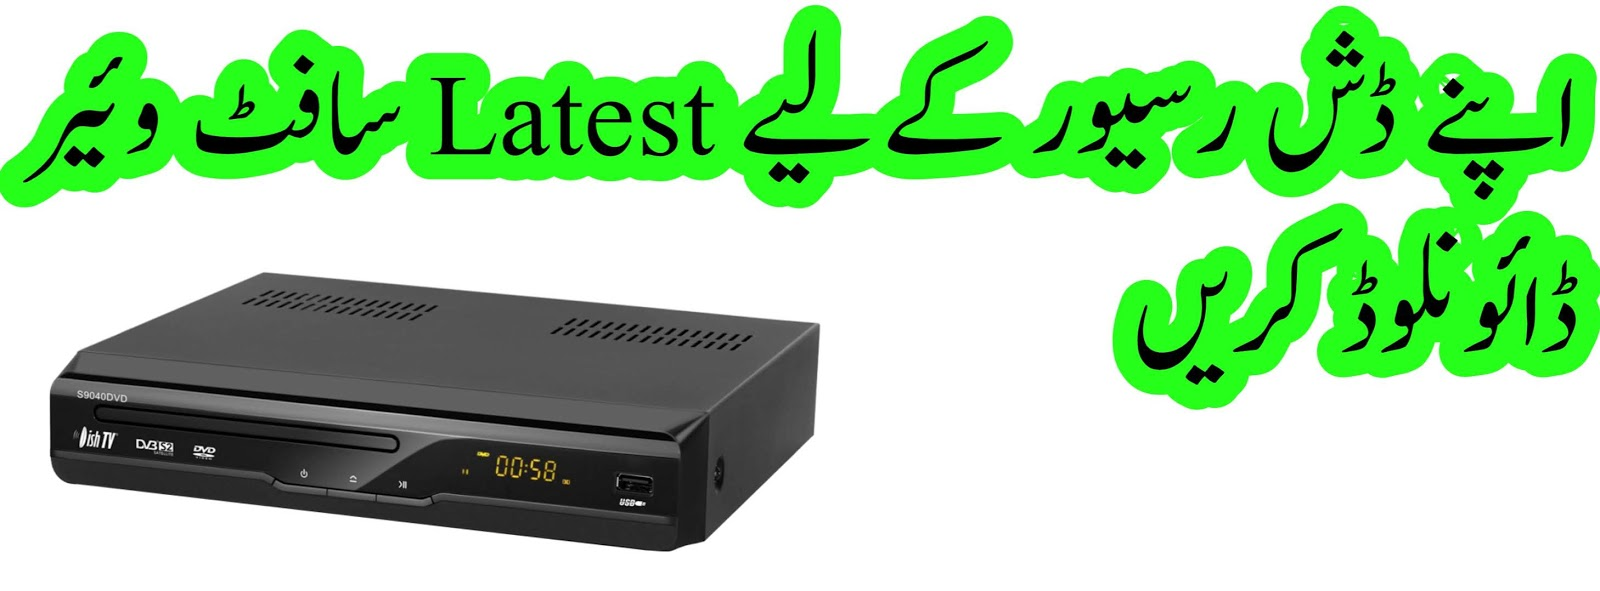 Starsat SR-4050 HD Extreme New Power VU Software July 2019